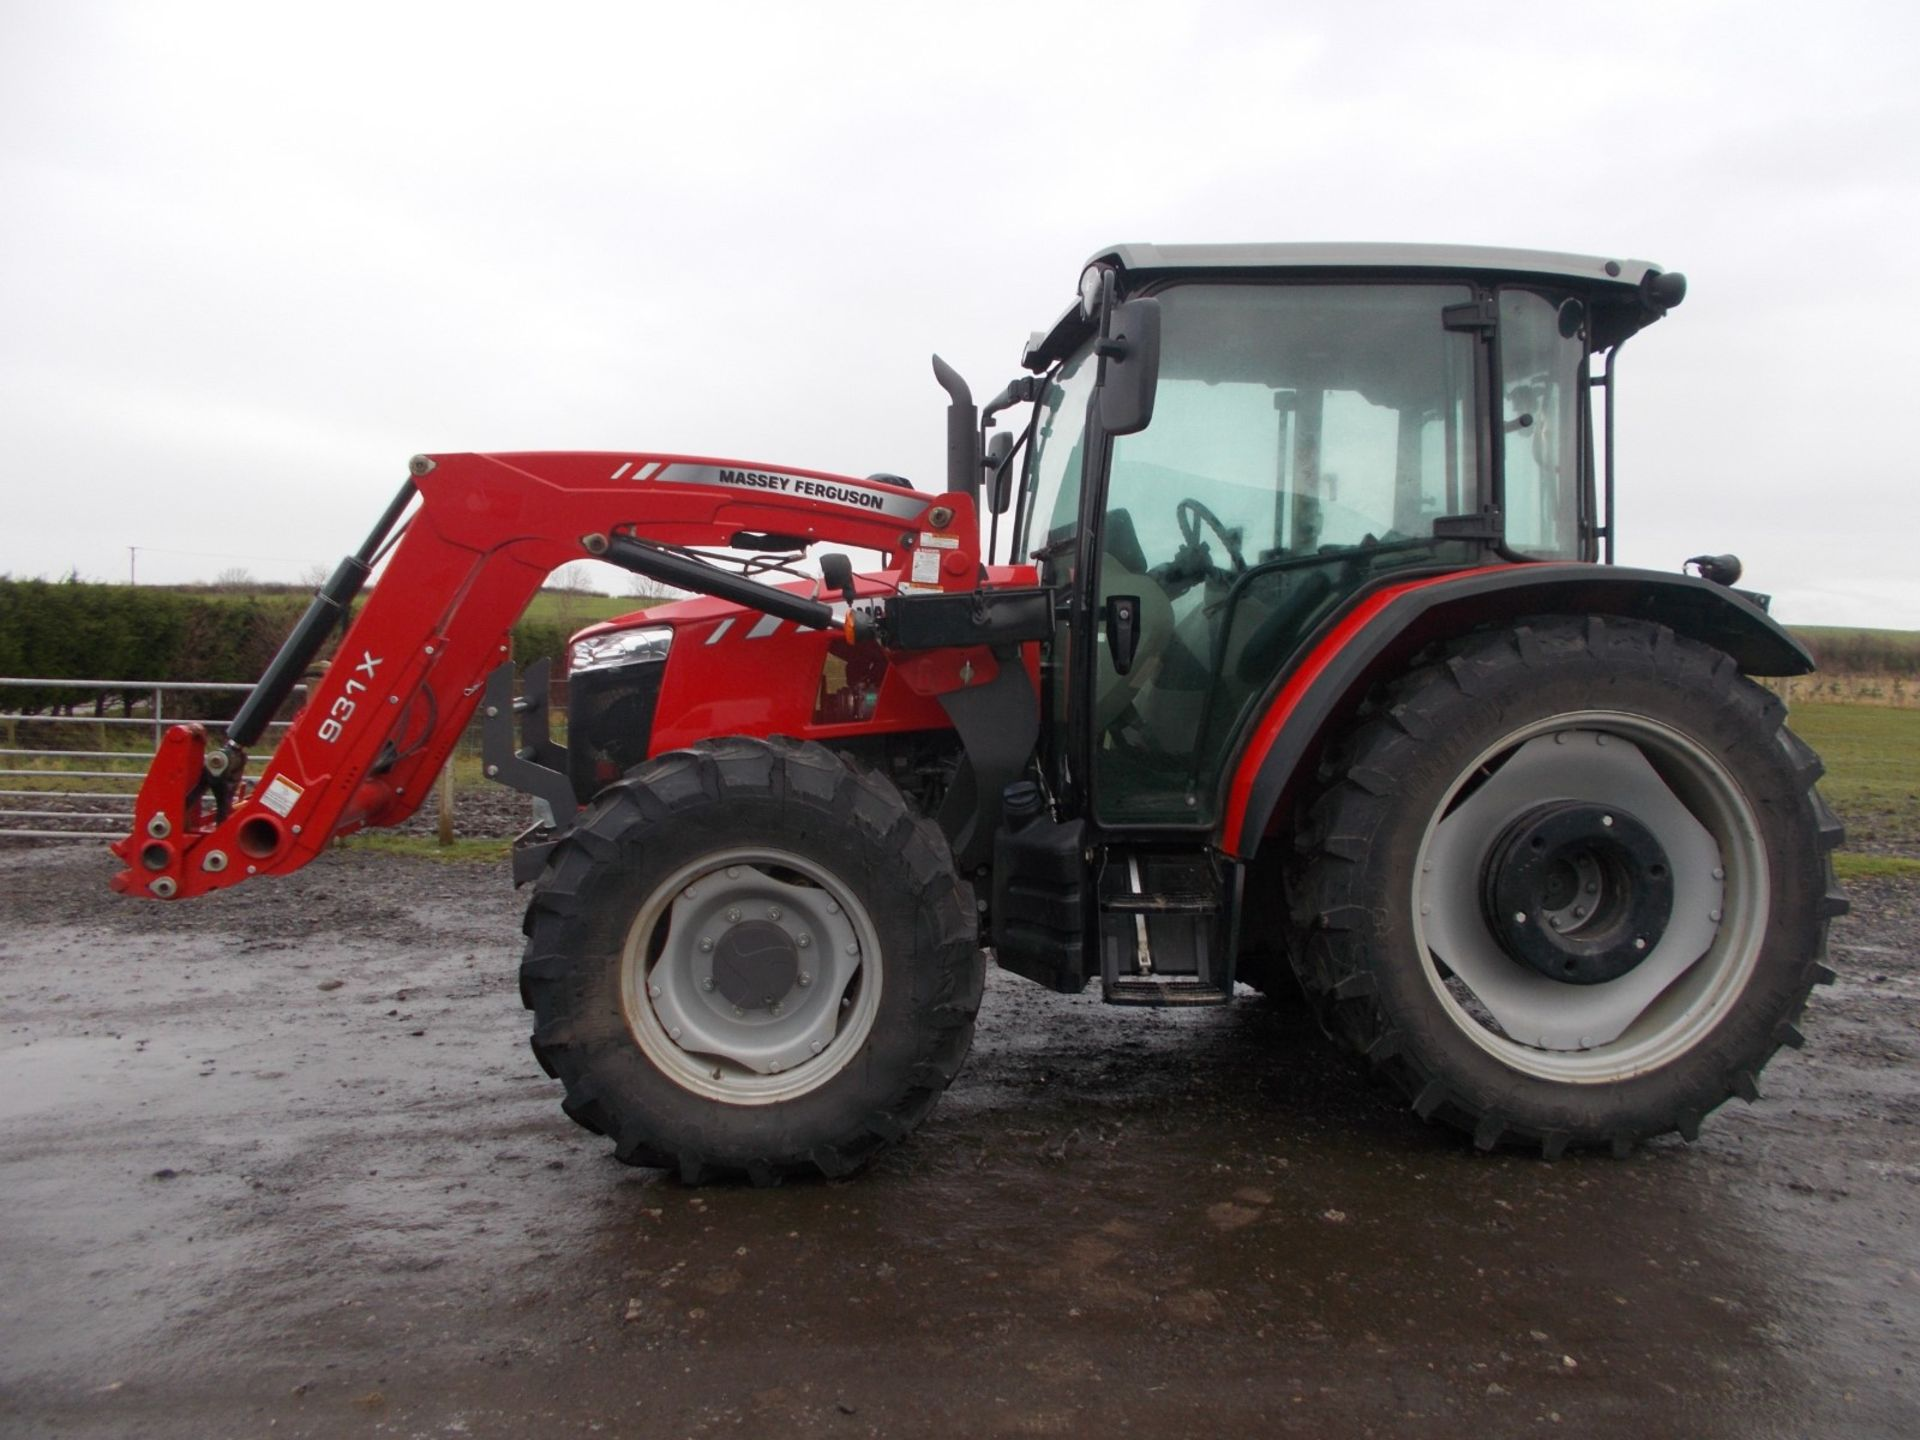 2018 MASSEY FERGUSON 4710 4WD TRACTOR WITH LOADER, AGCO 3.3 LITRE 3CYL TURBO DIESEL *PLUS VAT* - Image 4 of 21